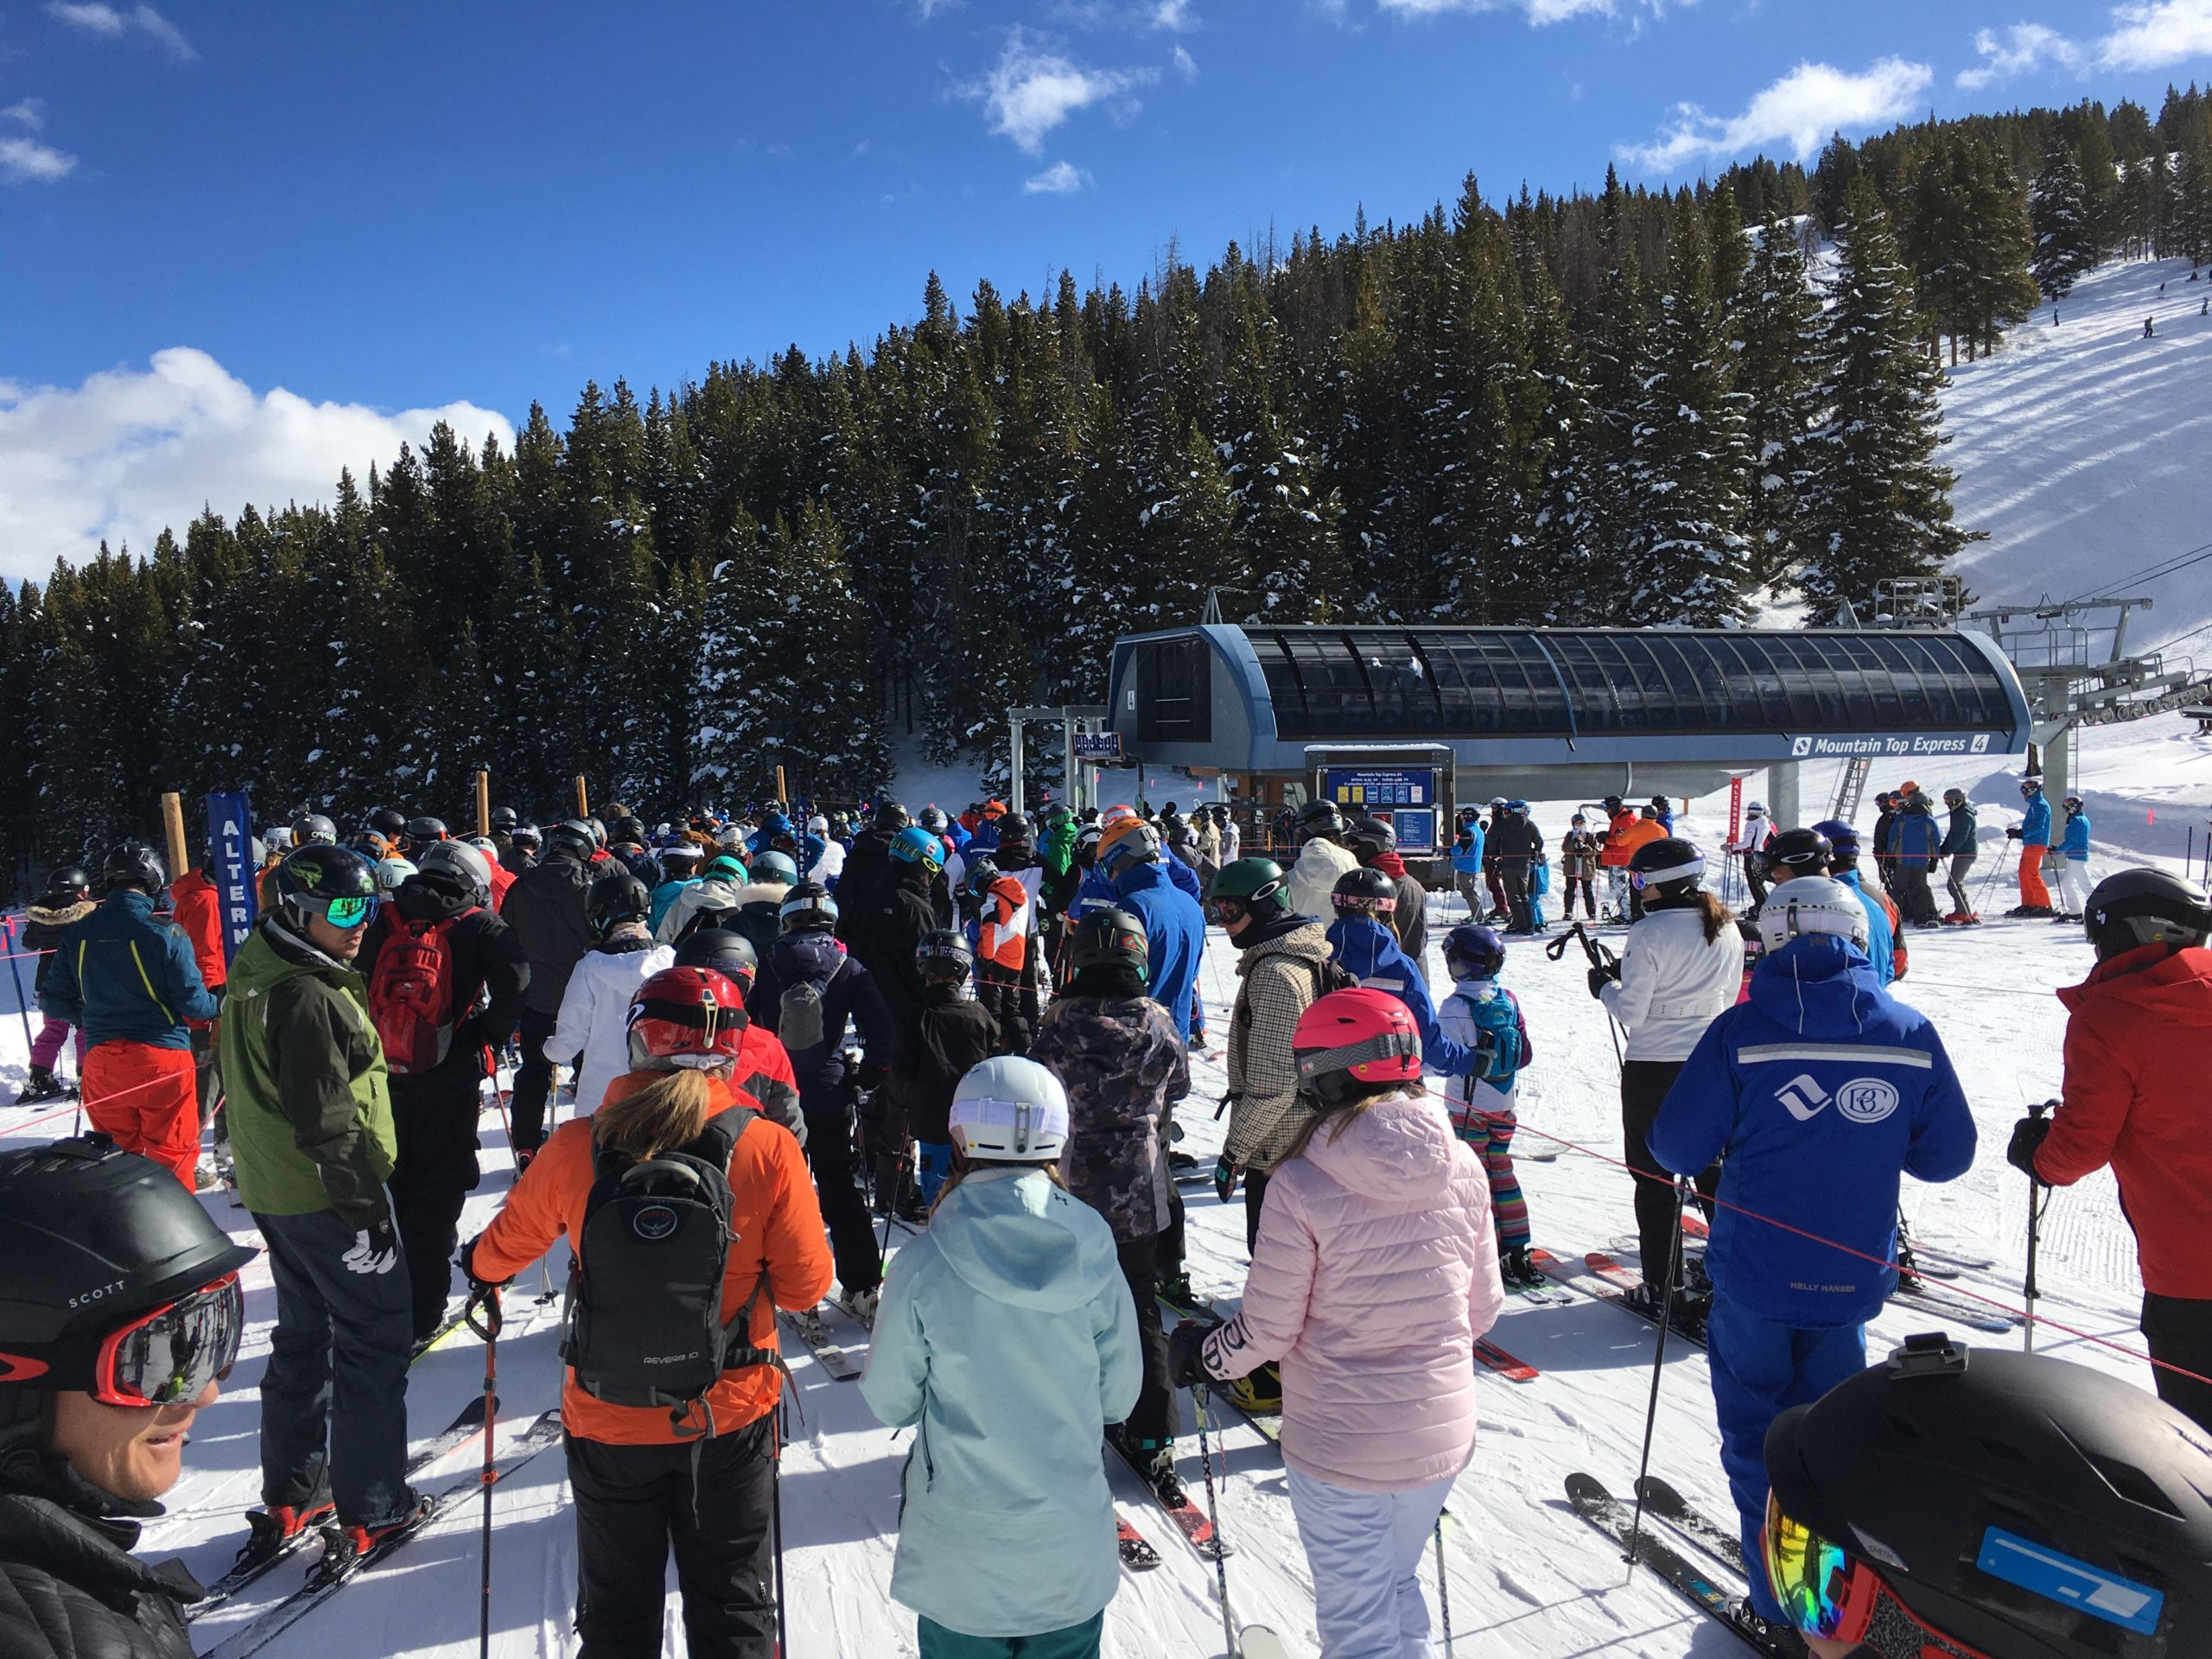 This line at the Mountain Top Express lift at Vail Mountain took about eight minutes to get through on Saturday, Feb. 15, 2020.